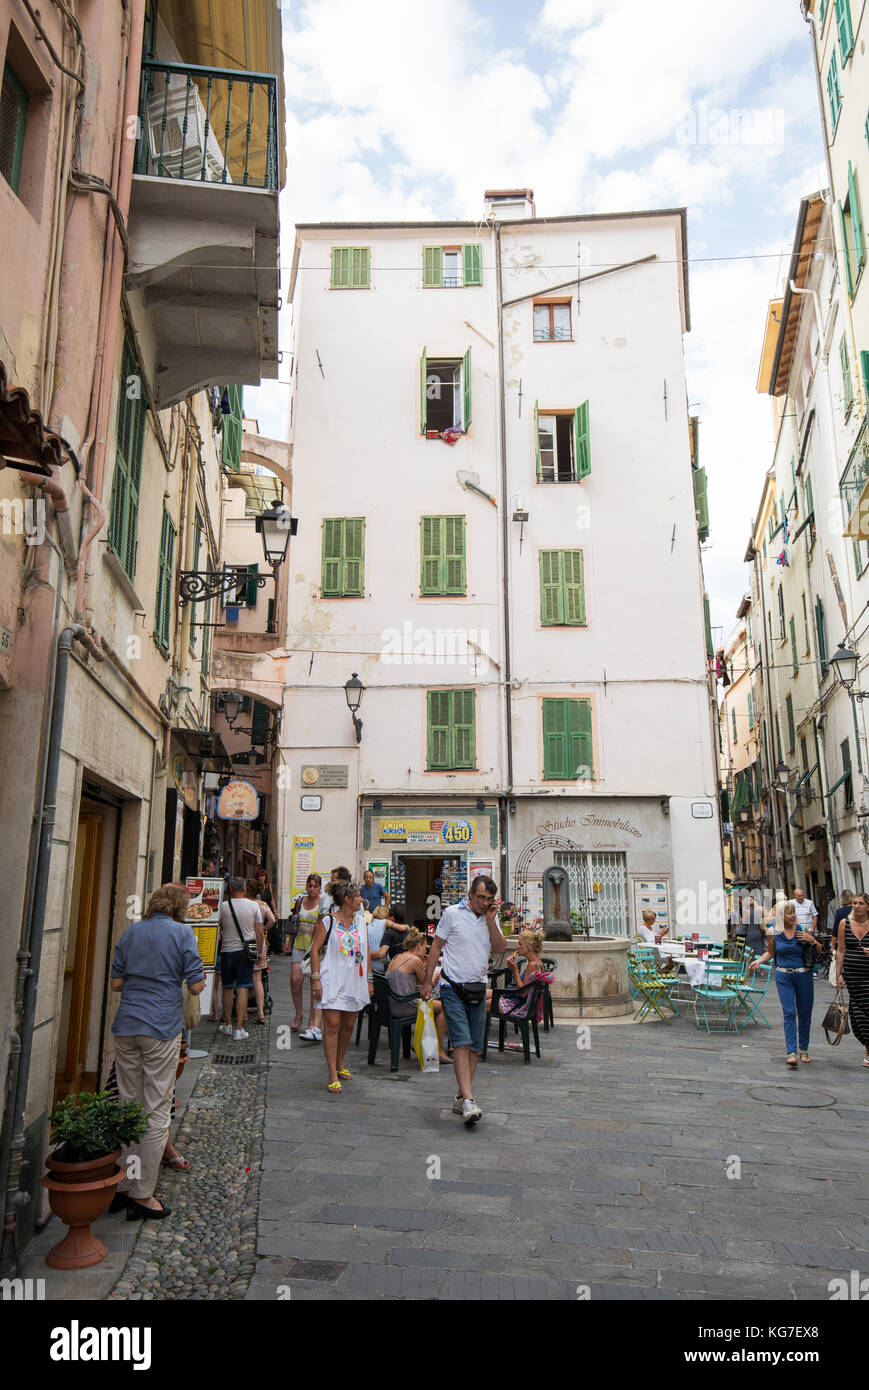 People enjoying food at pavement cafe, San Remo, Italy. Stock Photo